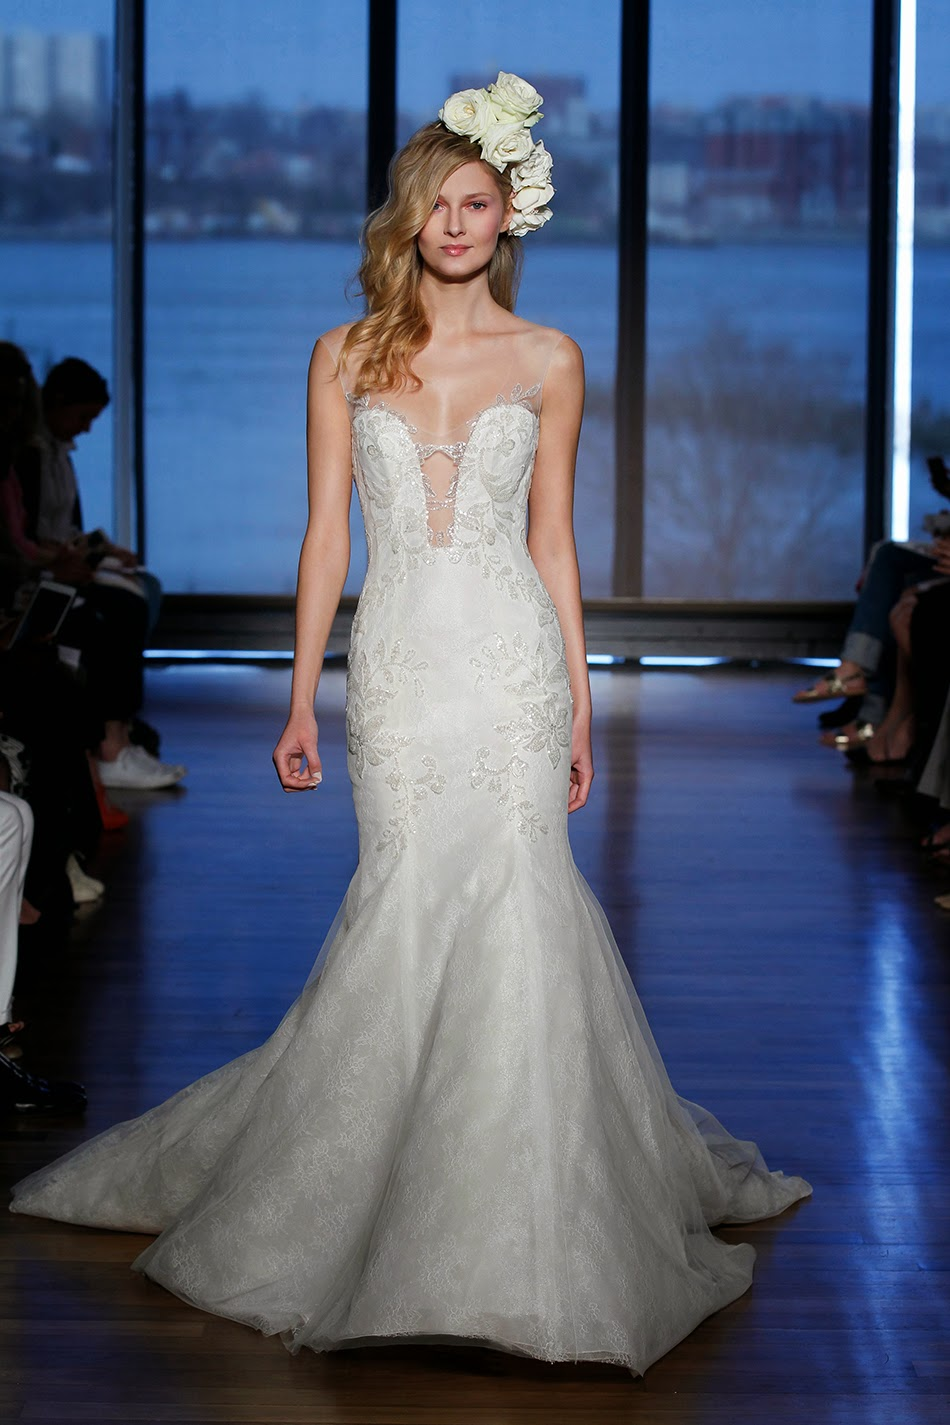 2015 Wedding Dresses: Mermaid Bridal Gowns by Ines di Santo Spring 2015